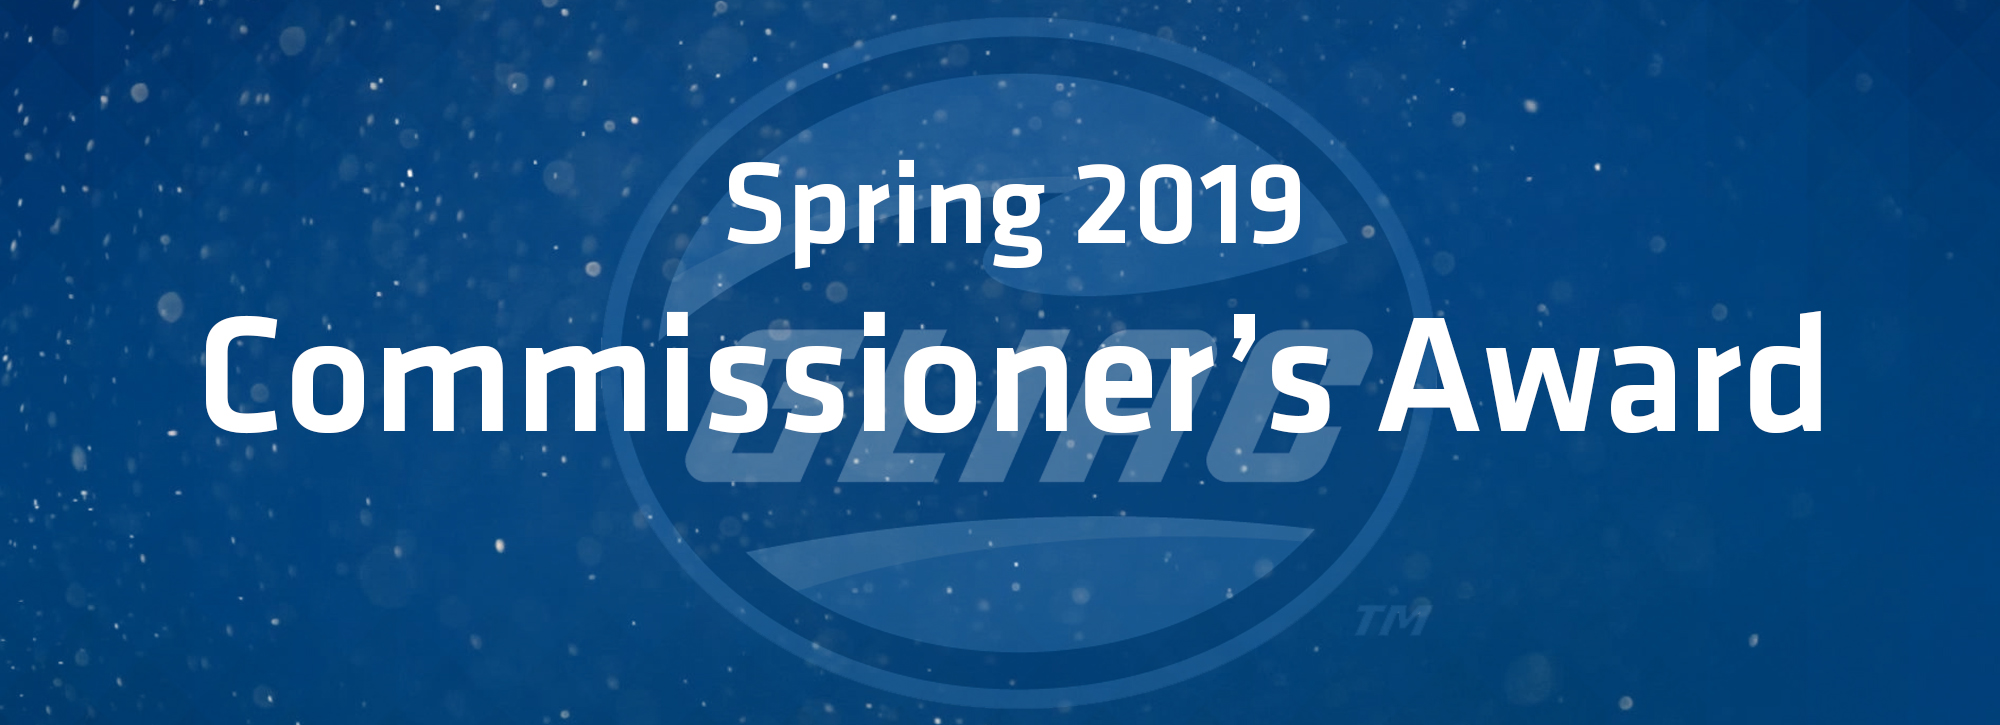 GLIAC recognizes Spring 2019 Commissioner's Award winners